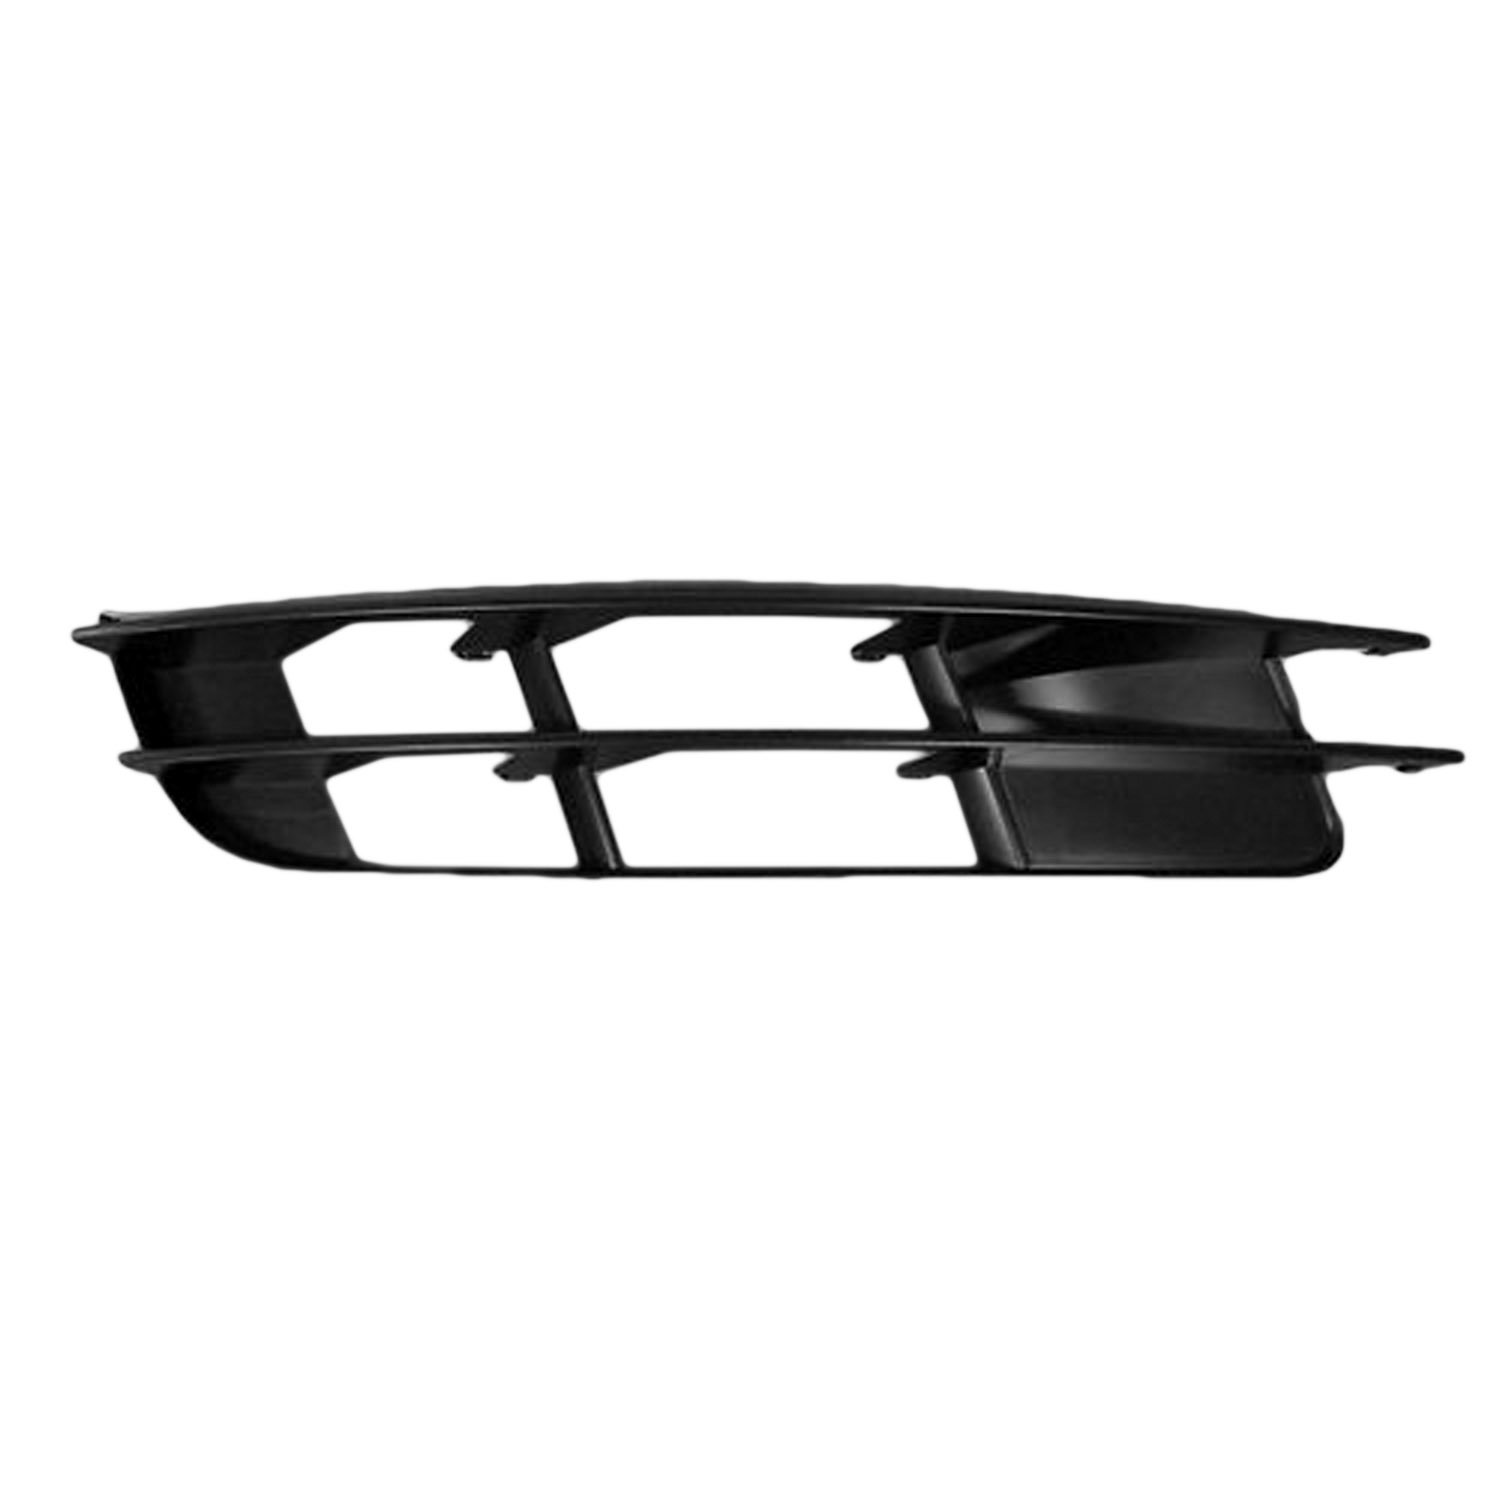 CPP Replacement Bumper Grille Insert AU1036104 for 2007-2009 Audi Q7